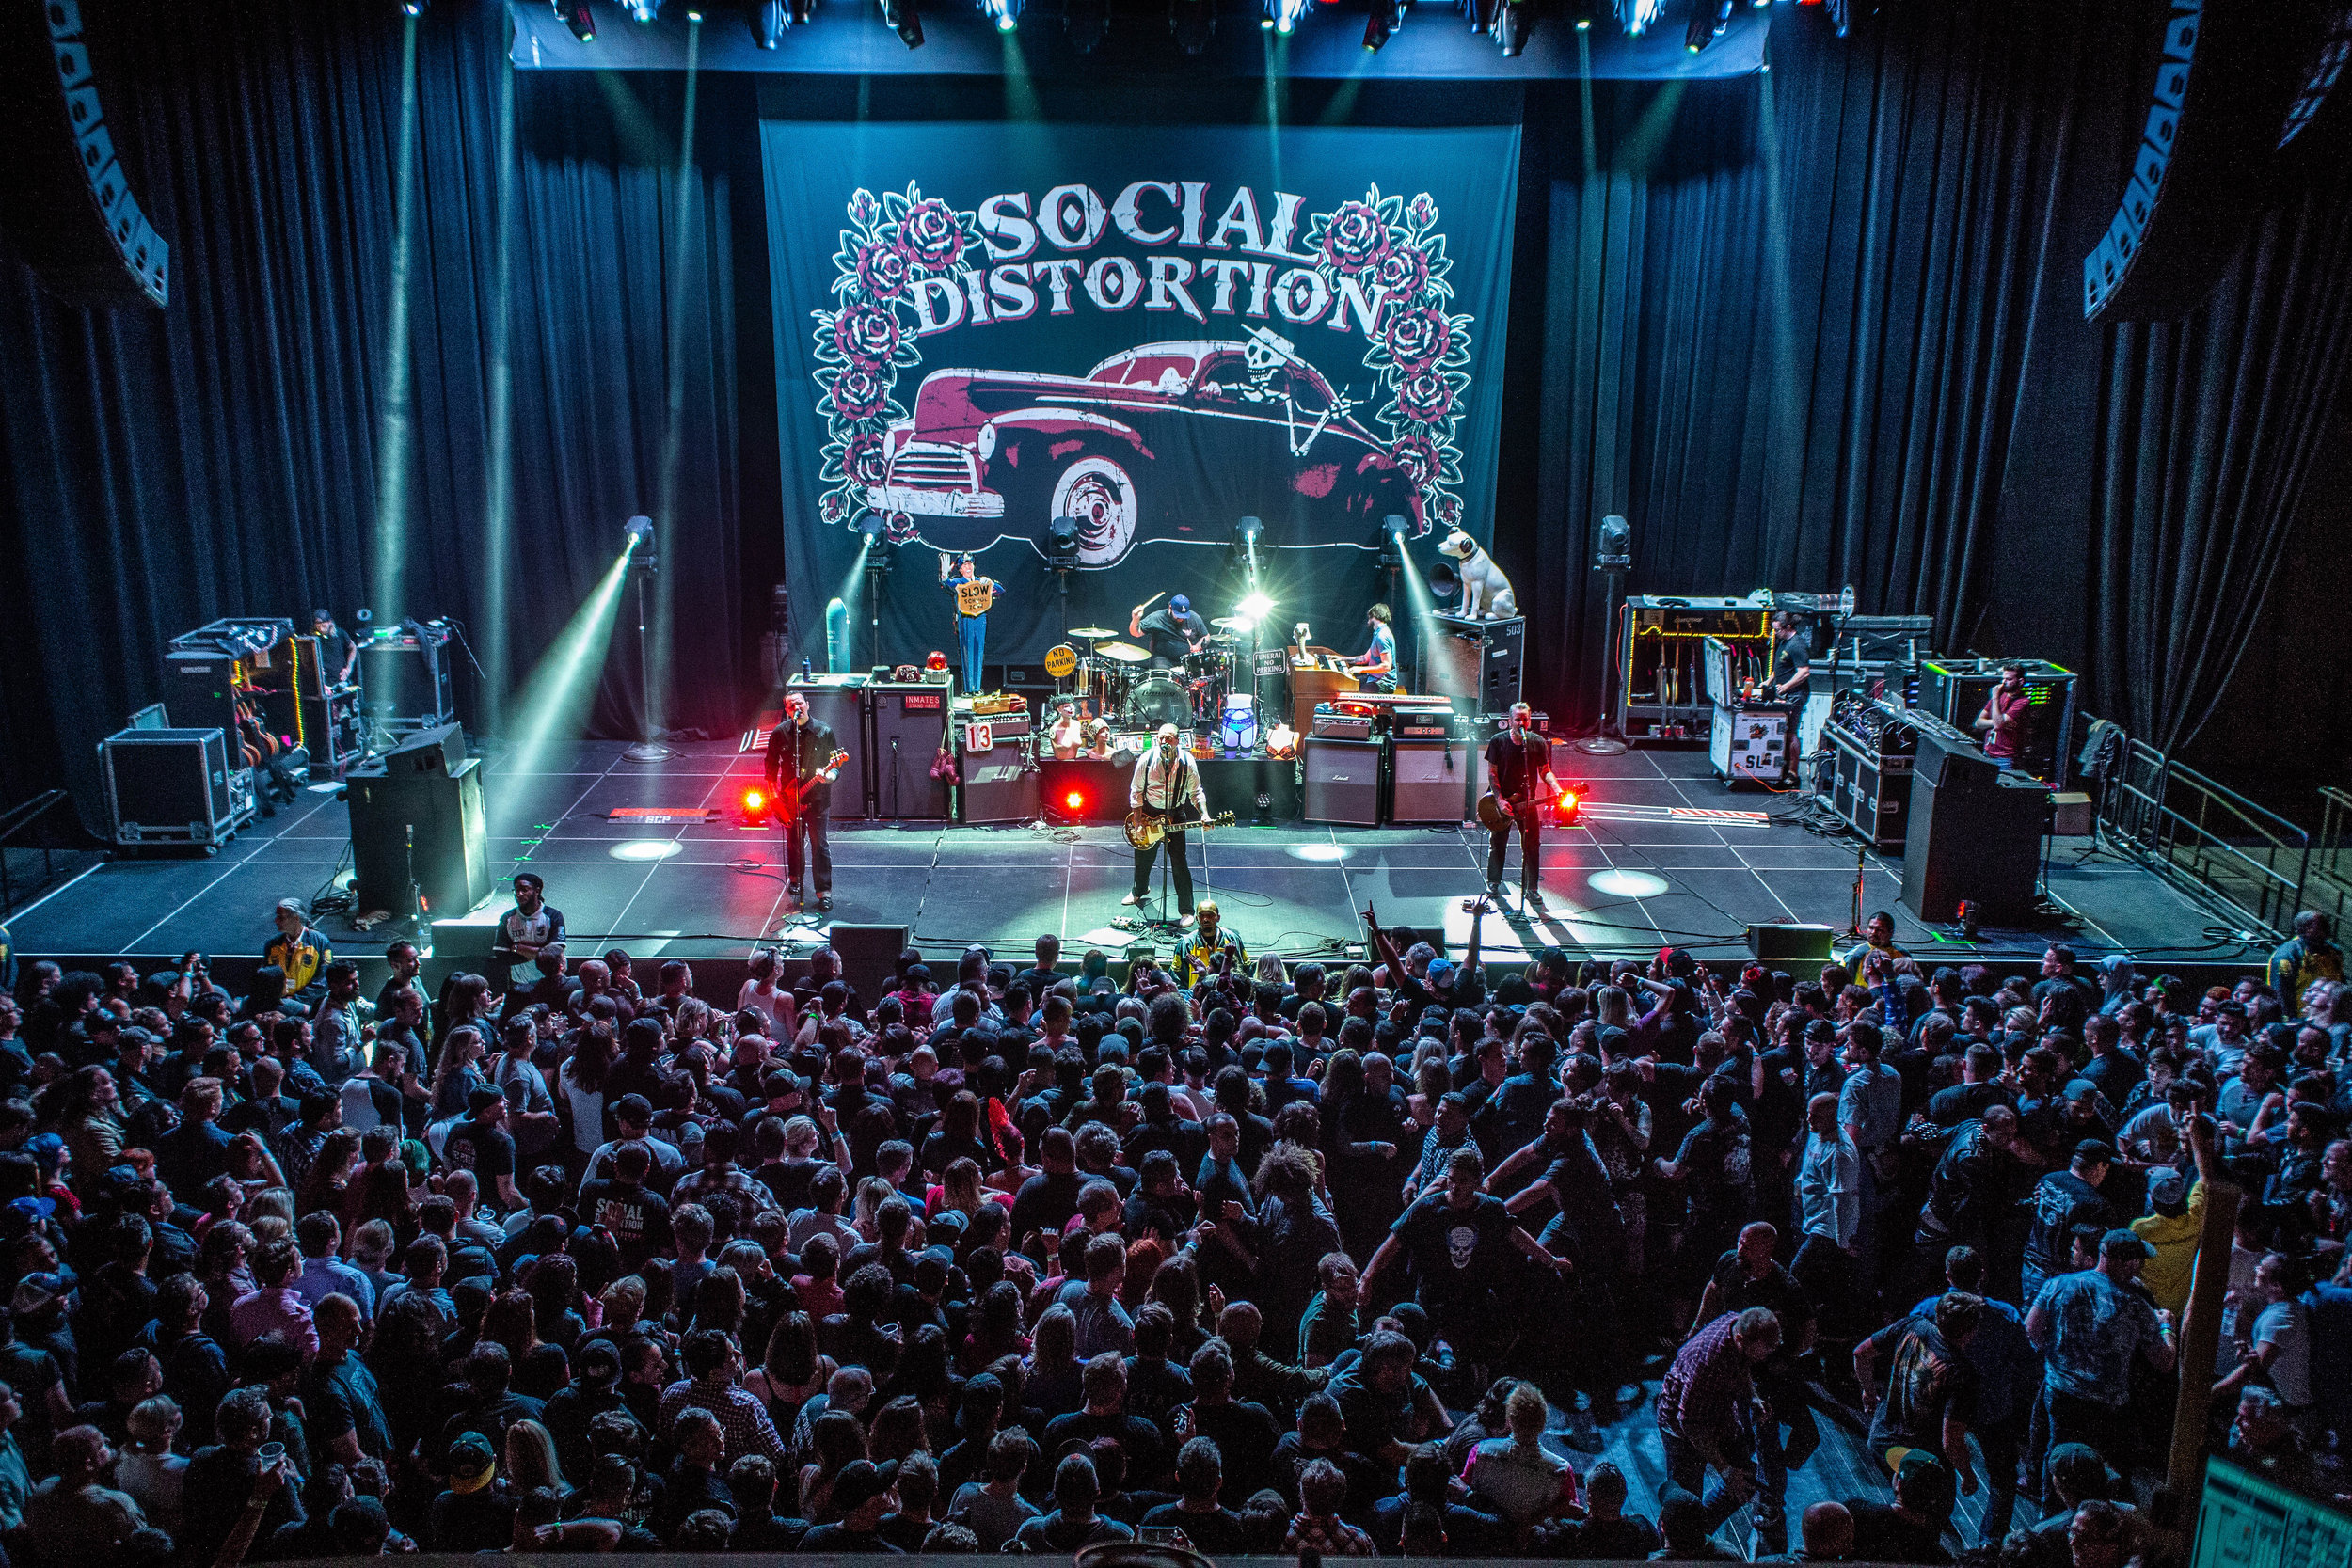 Social Distortion performing in San Francisco, CA. Photo Credit: Jared Stossel